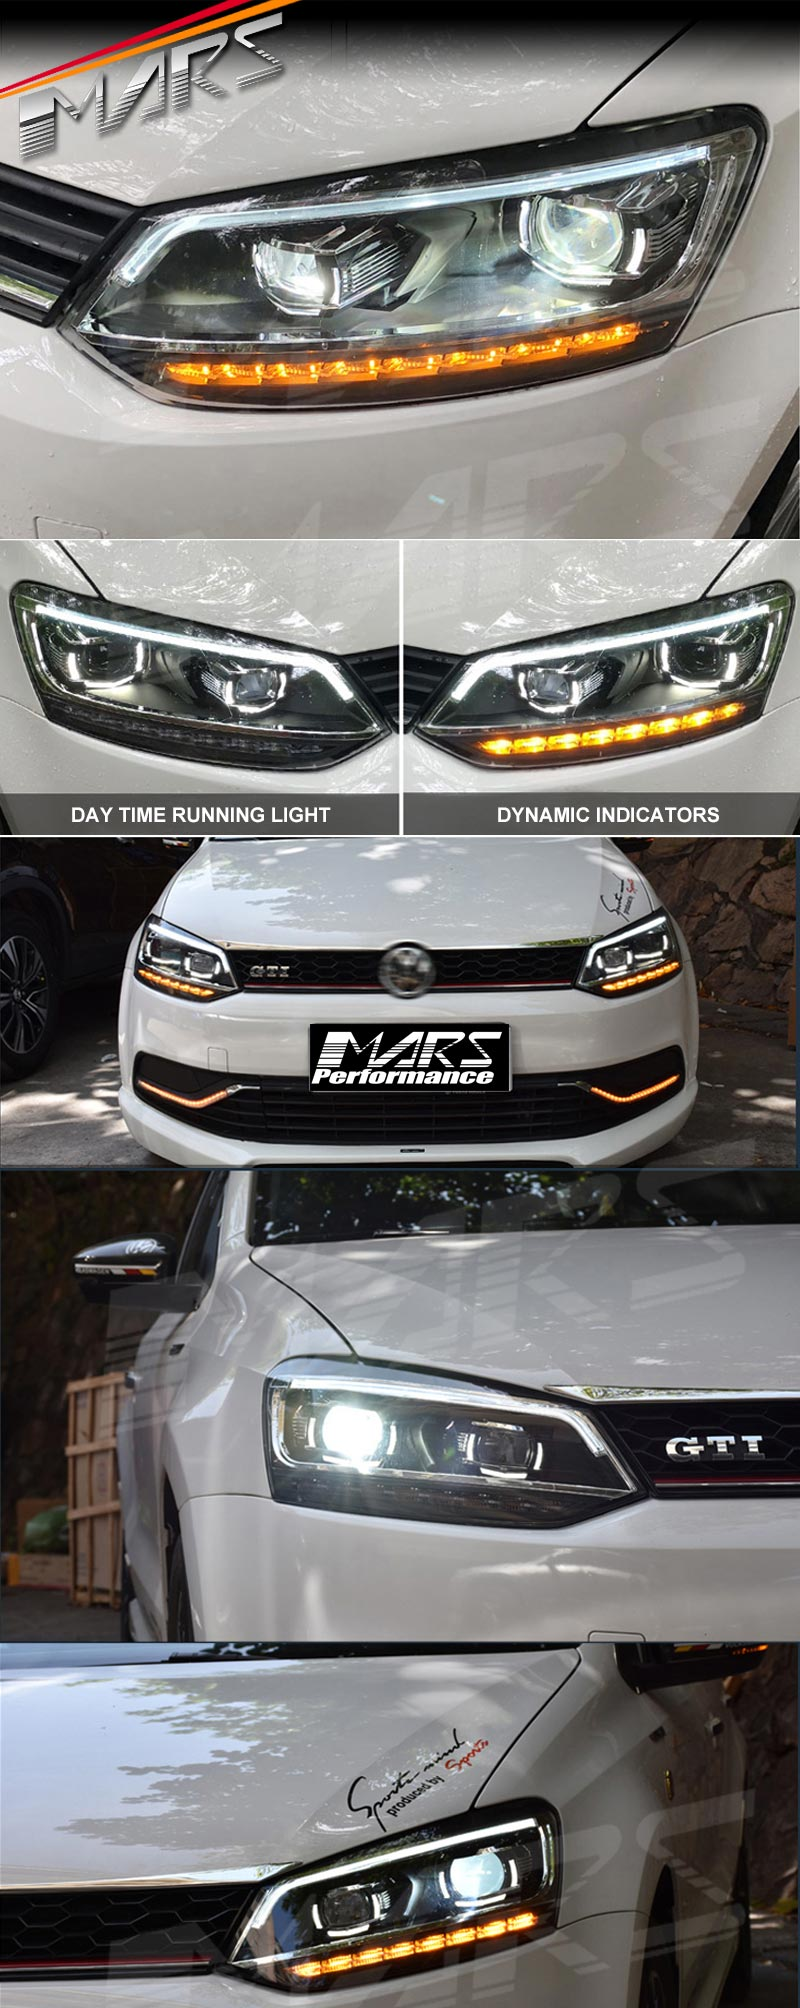 Black Led Drl Projector Head Lights Sequential Indicators For Vw Polo 6r 10 16 Ebay